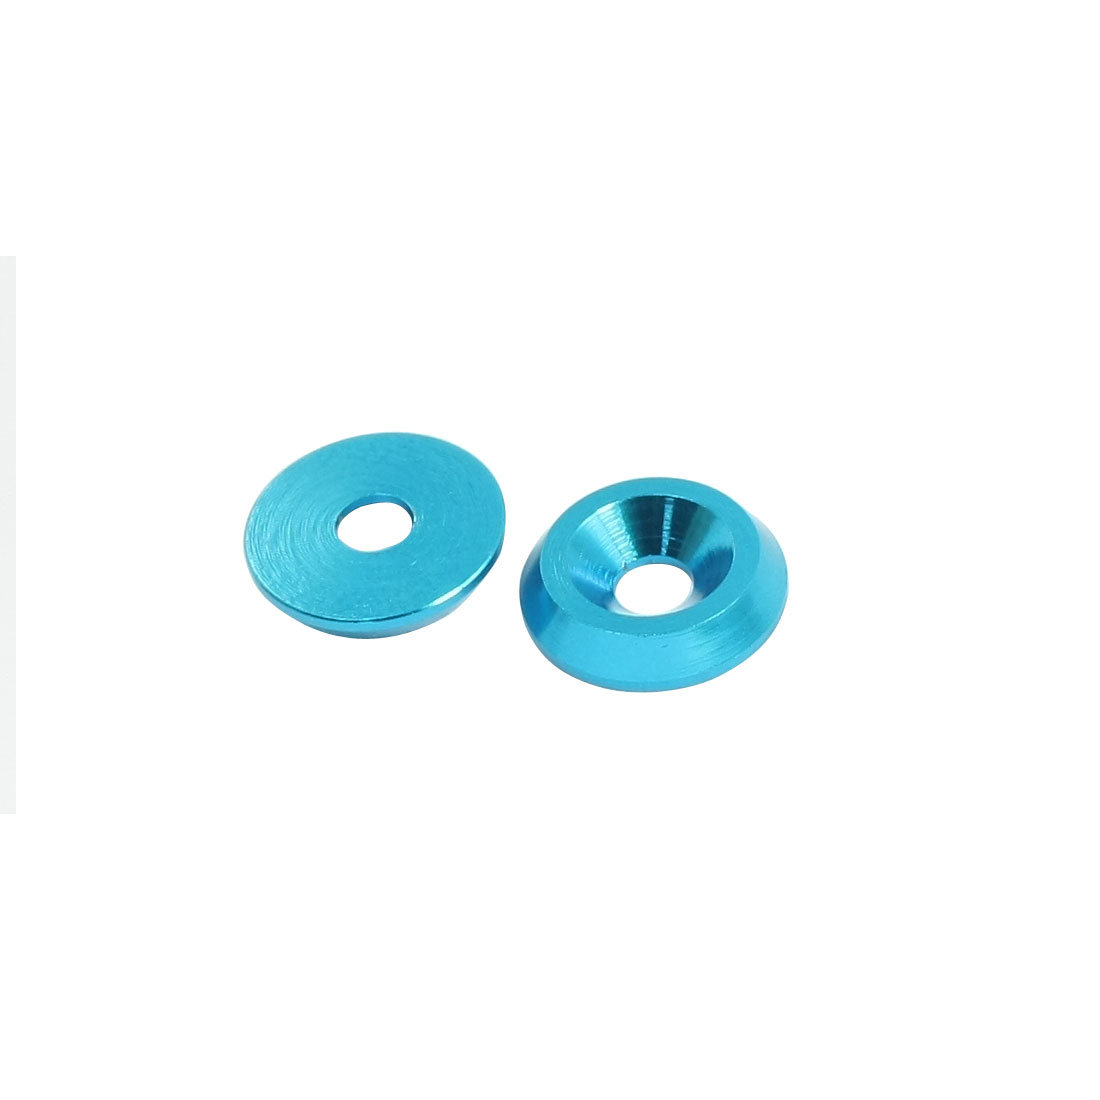 2 Pcs Blue Aluminium Alloy Wheel Spacer Washer Adaptor for 4mm Dia Shaft RC Model